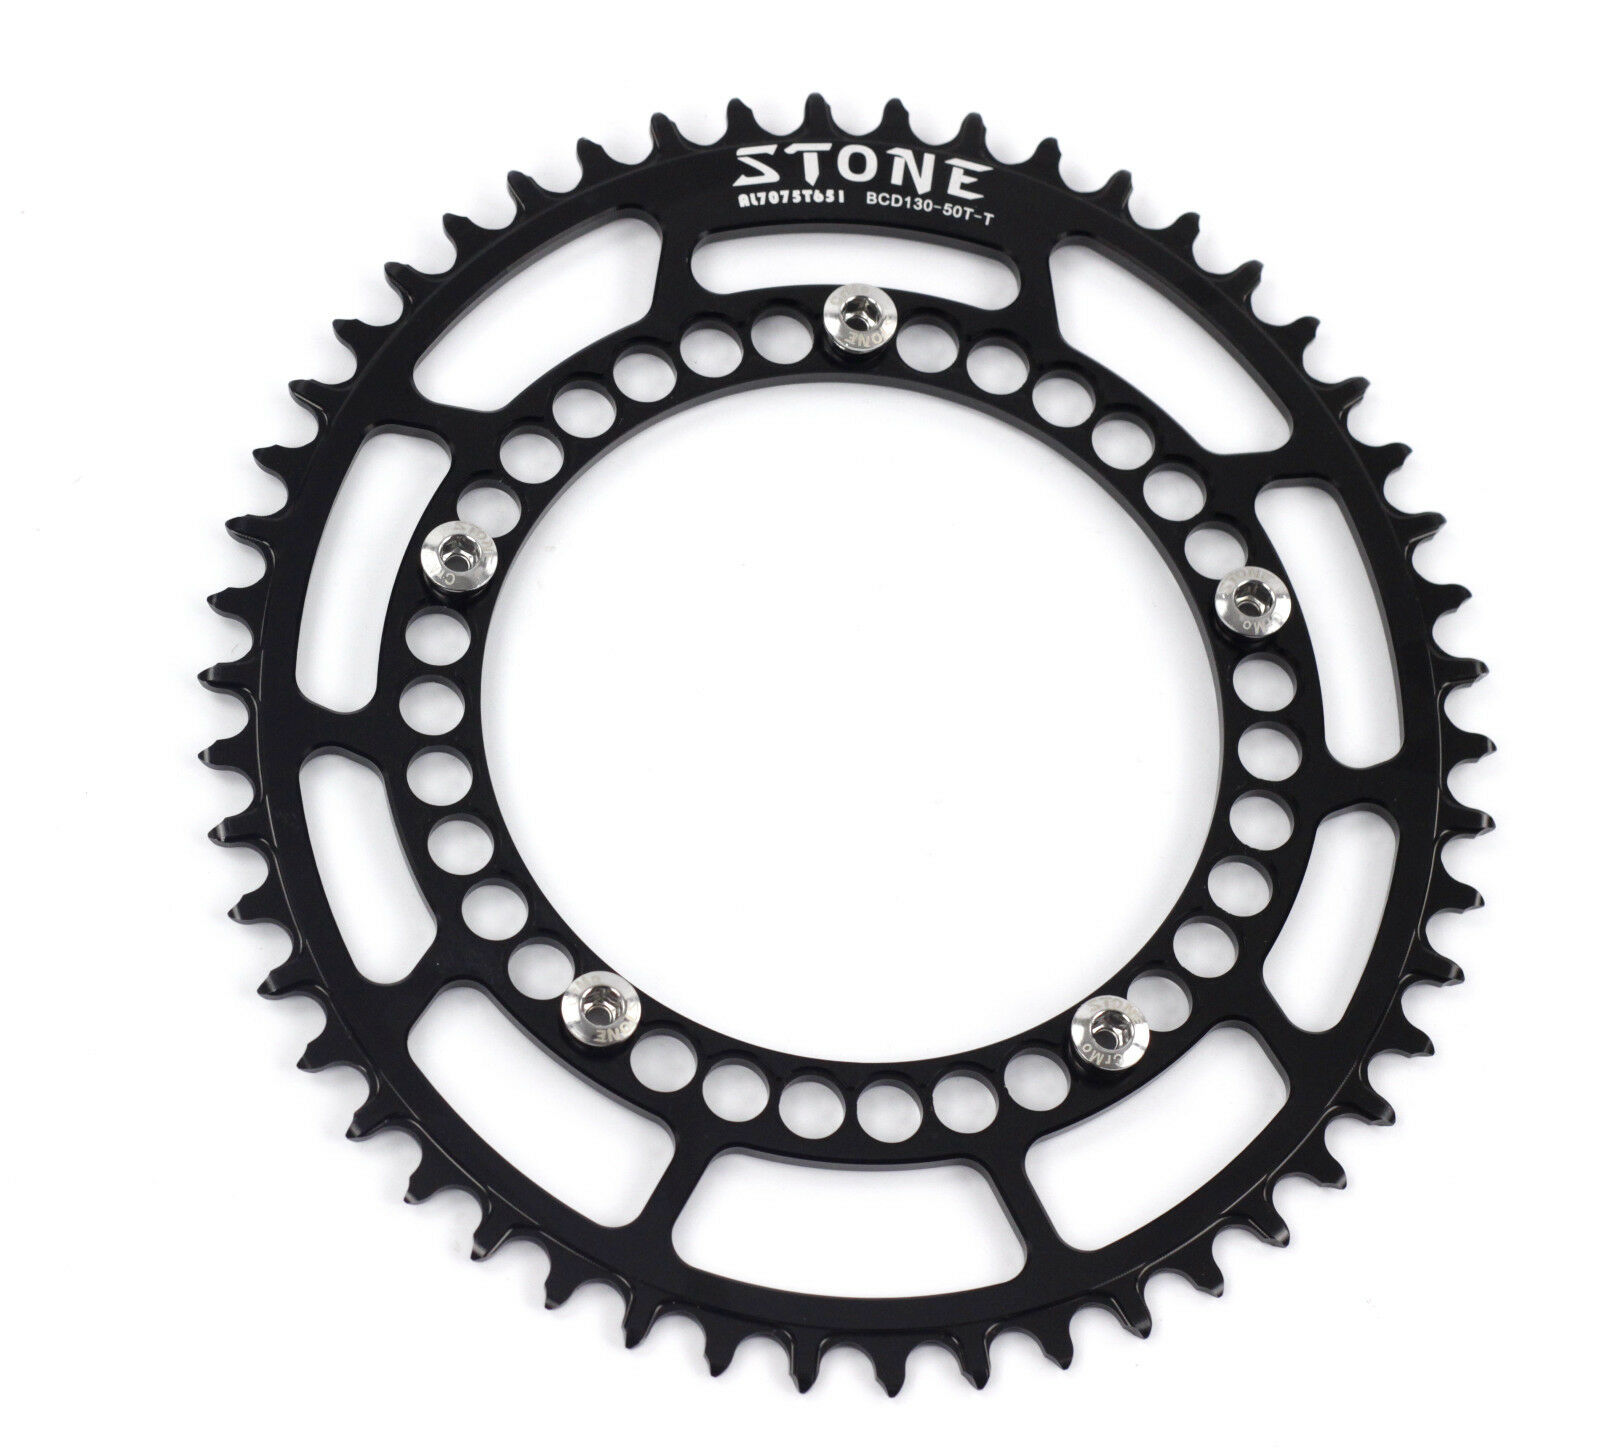 Stone AL7075 Oval Chainring Narrow Wide for Brompton Road Bike BCD130mm